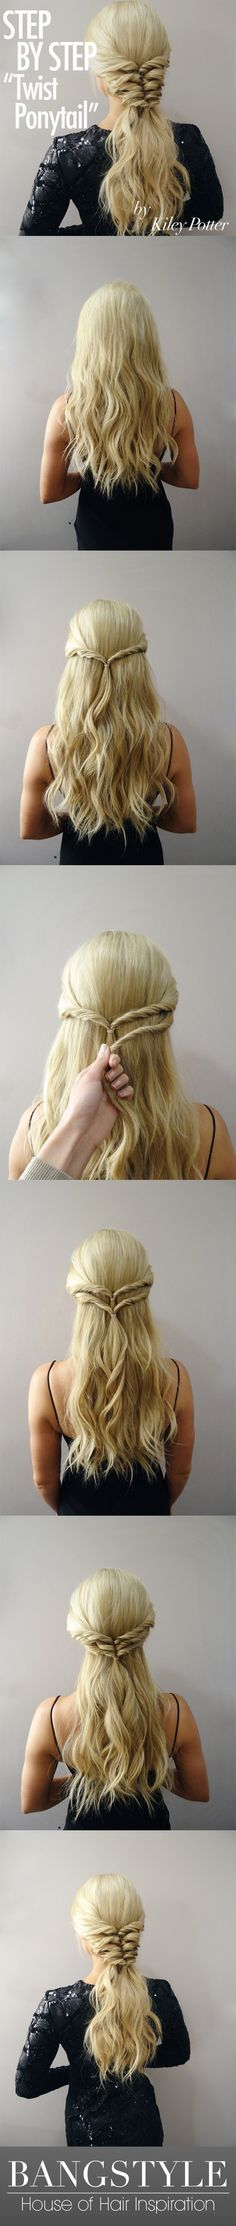 Get the Look! Twist Ponytail Tutorial by Kiley Potter